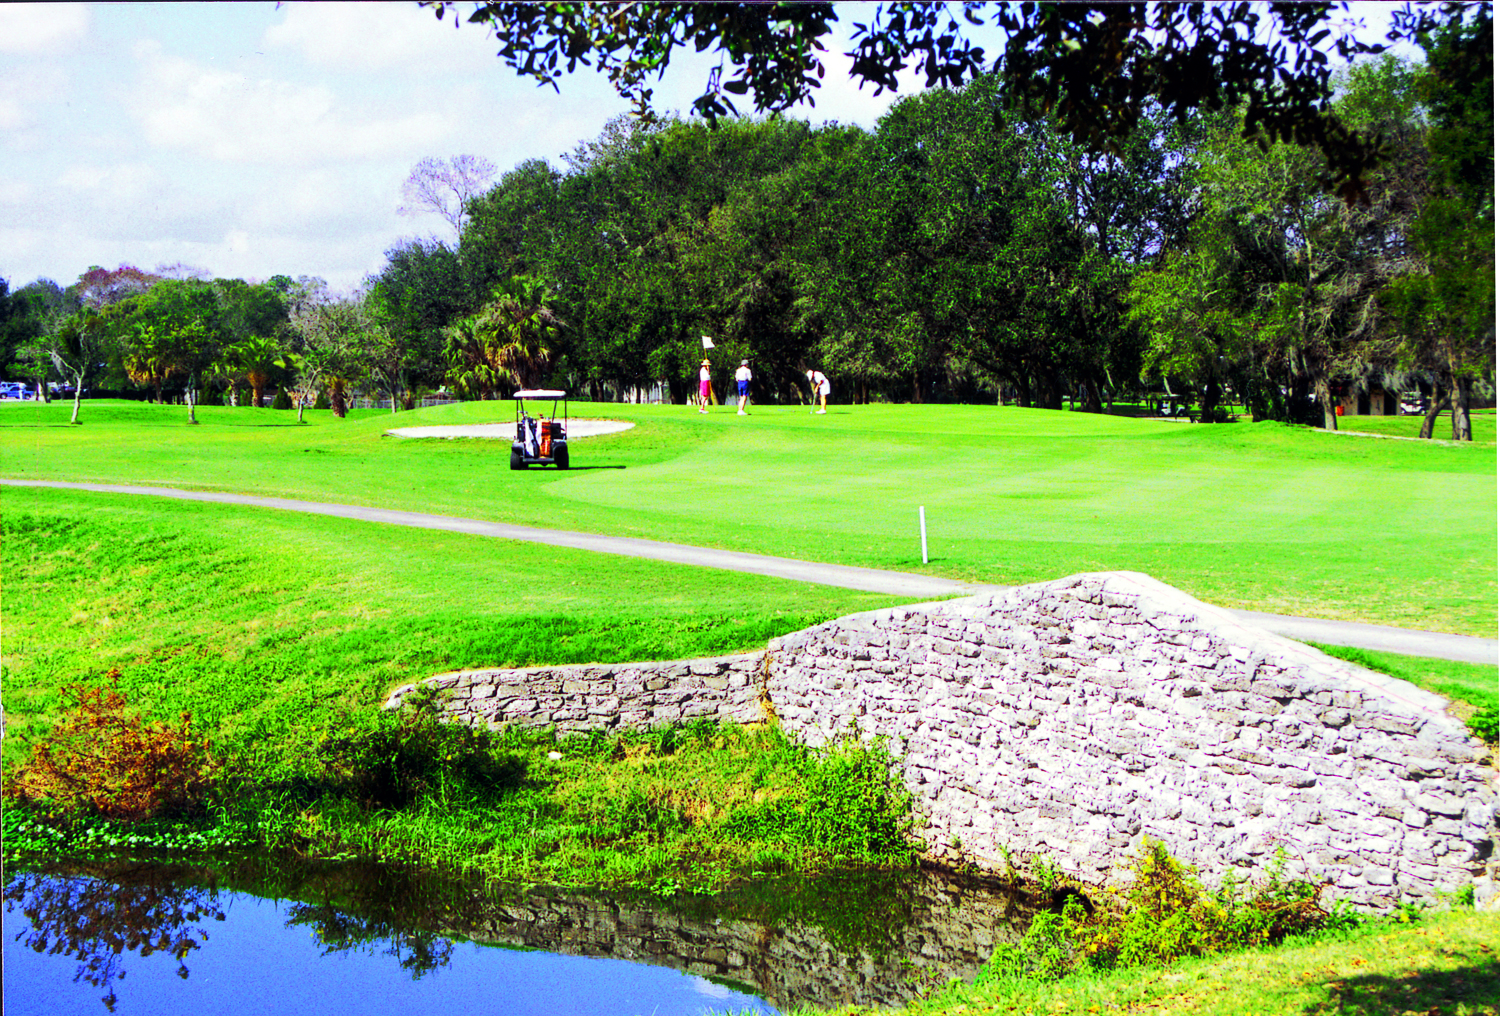 Golfers on the Cleveland Heights golf course in Lakeland